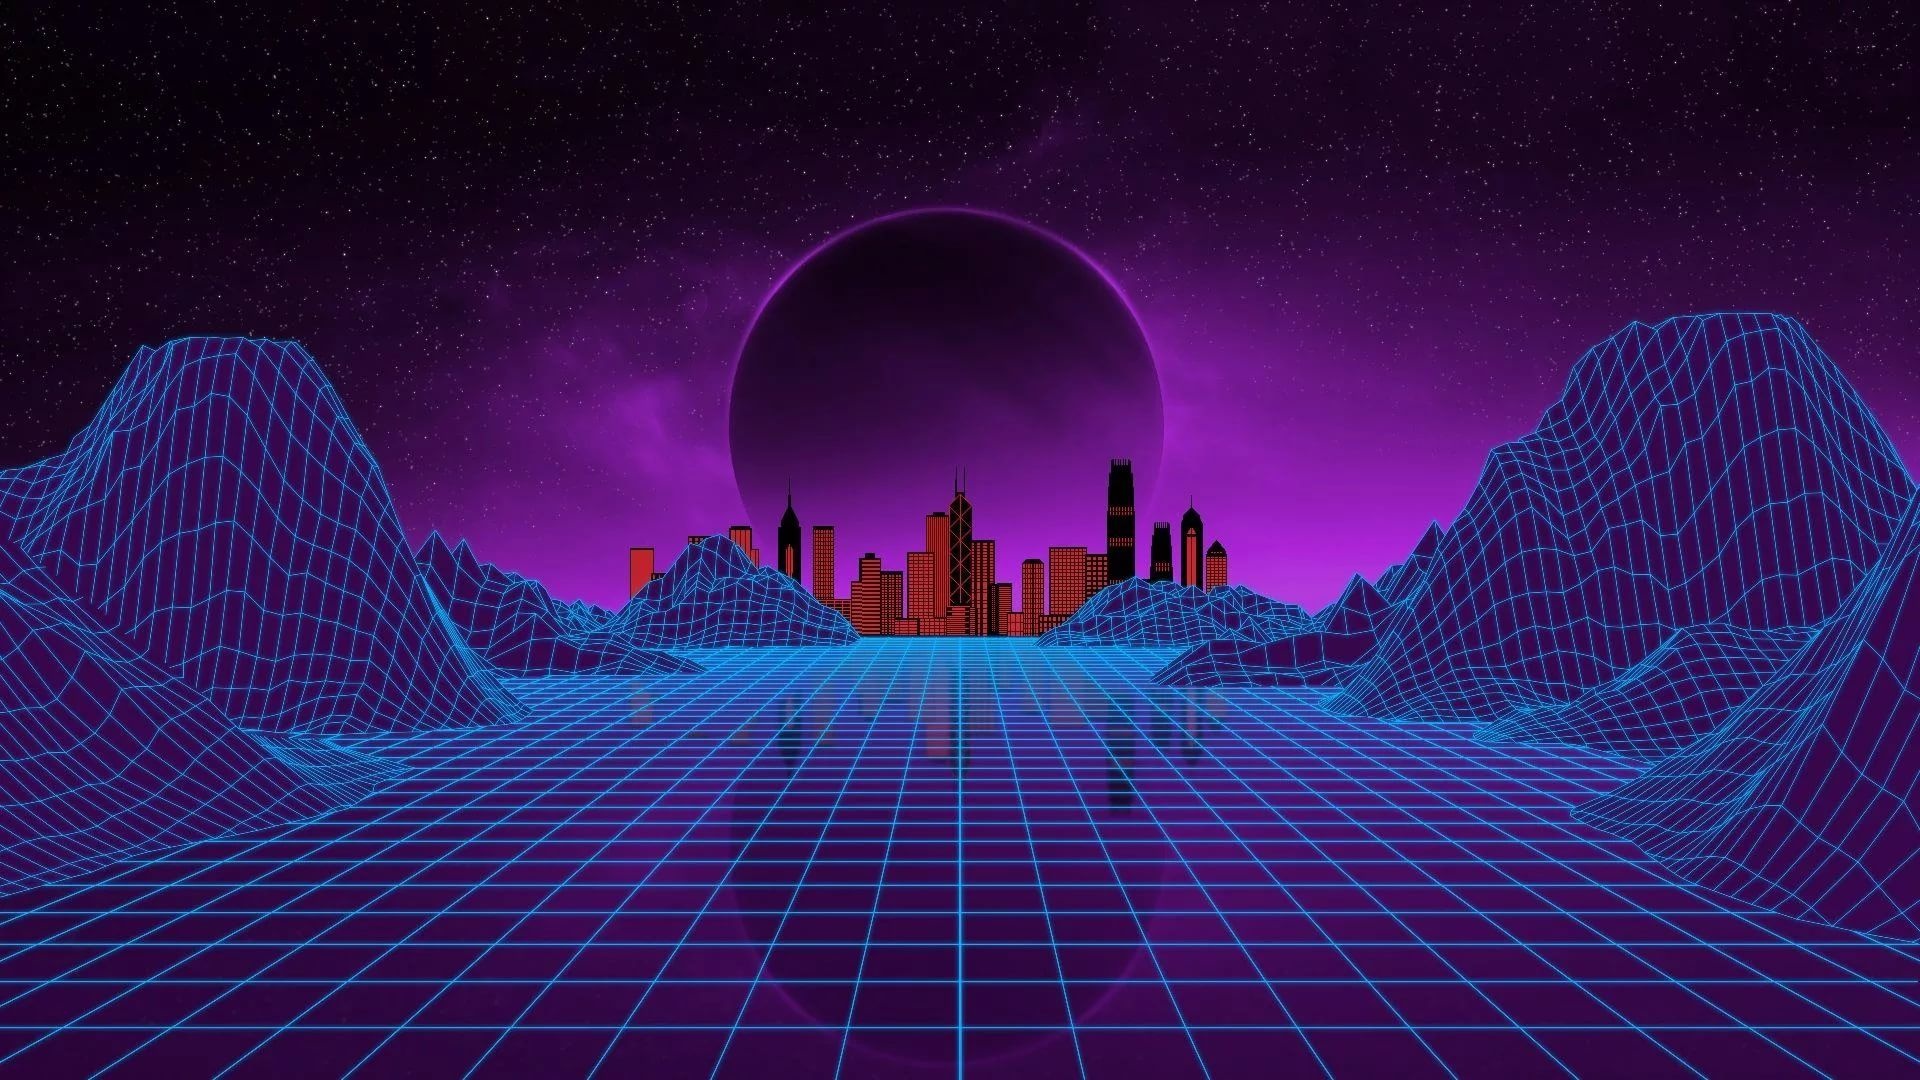 Synthwave hd wallpaper 1080